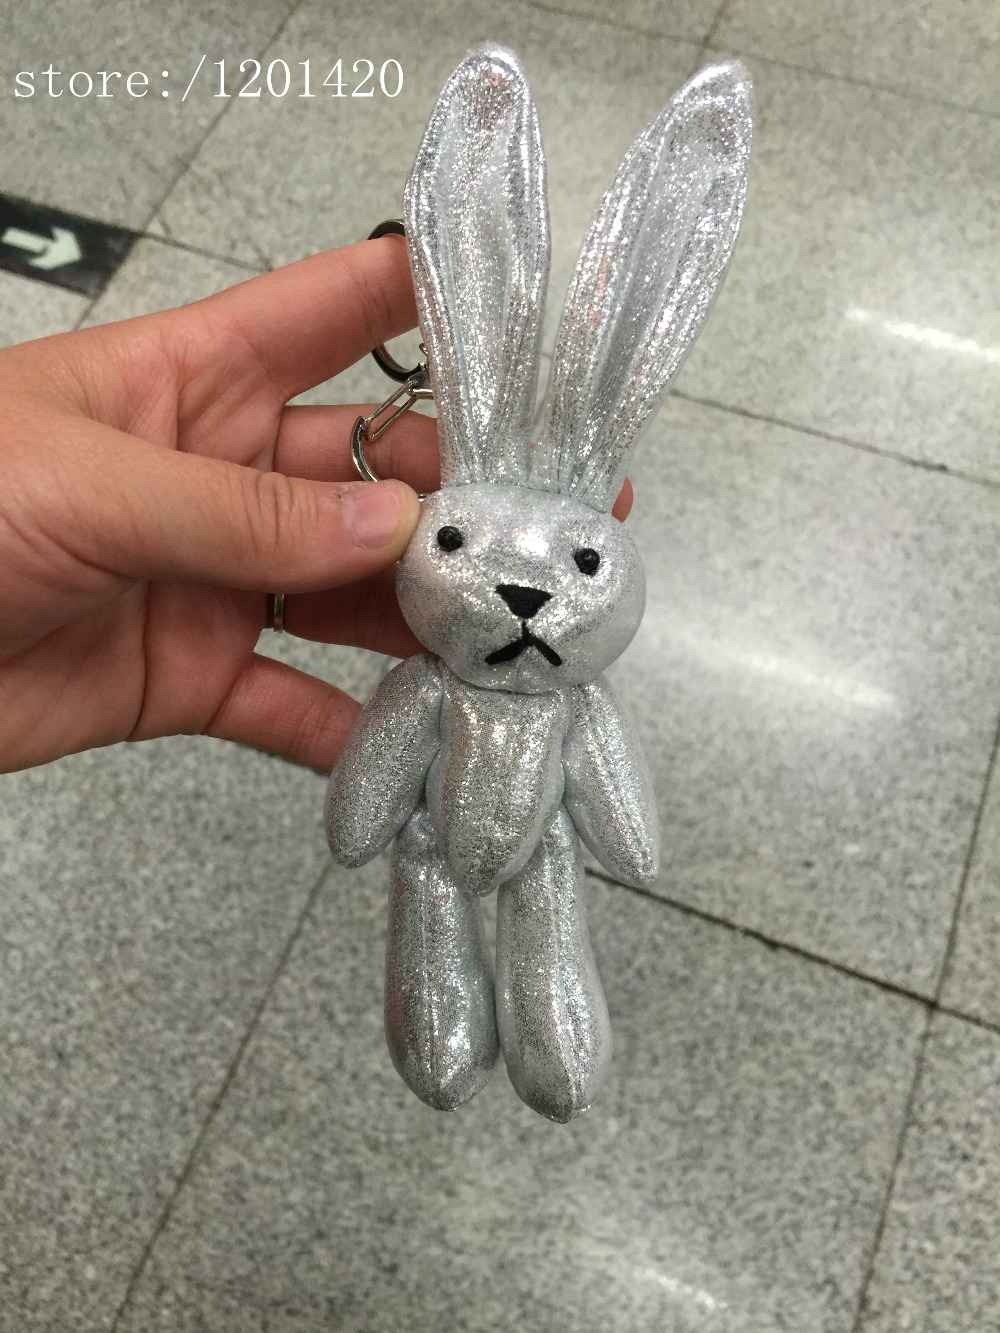 Bling Color Rabbit Shaped Doll Key Chain Car Key Ring Bunny Woman  Accessories Hand bag Charm Tote Shoulder Wallet Purse Charm-in Key Chains  from Jewelry ... eeaee4d59b65